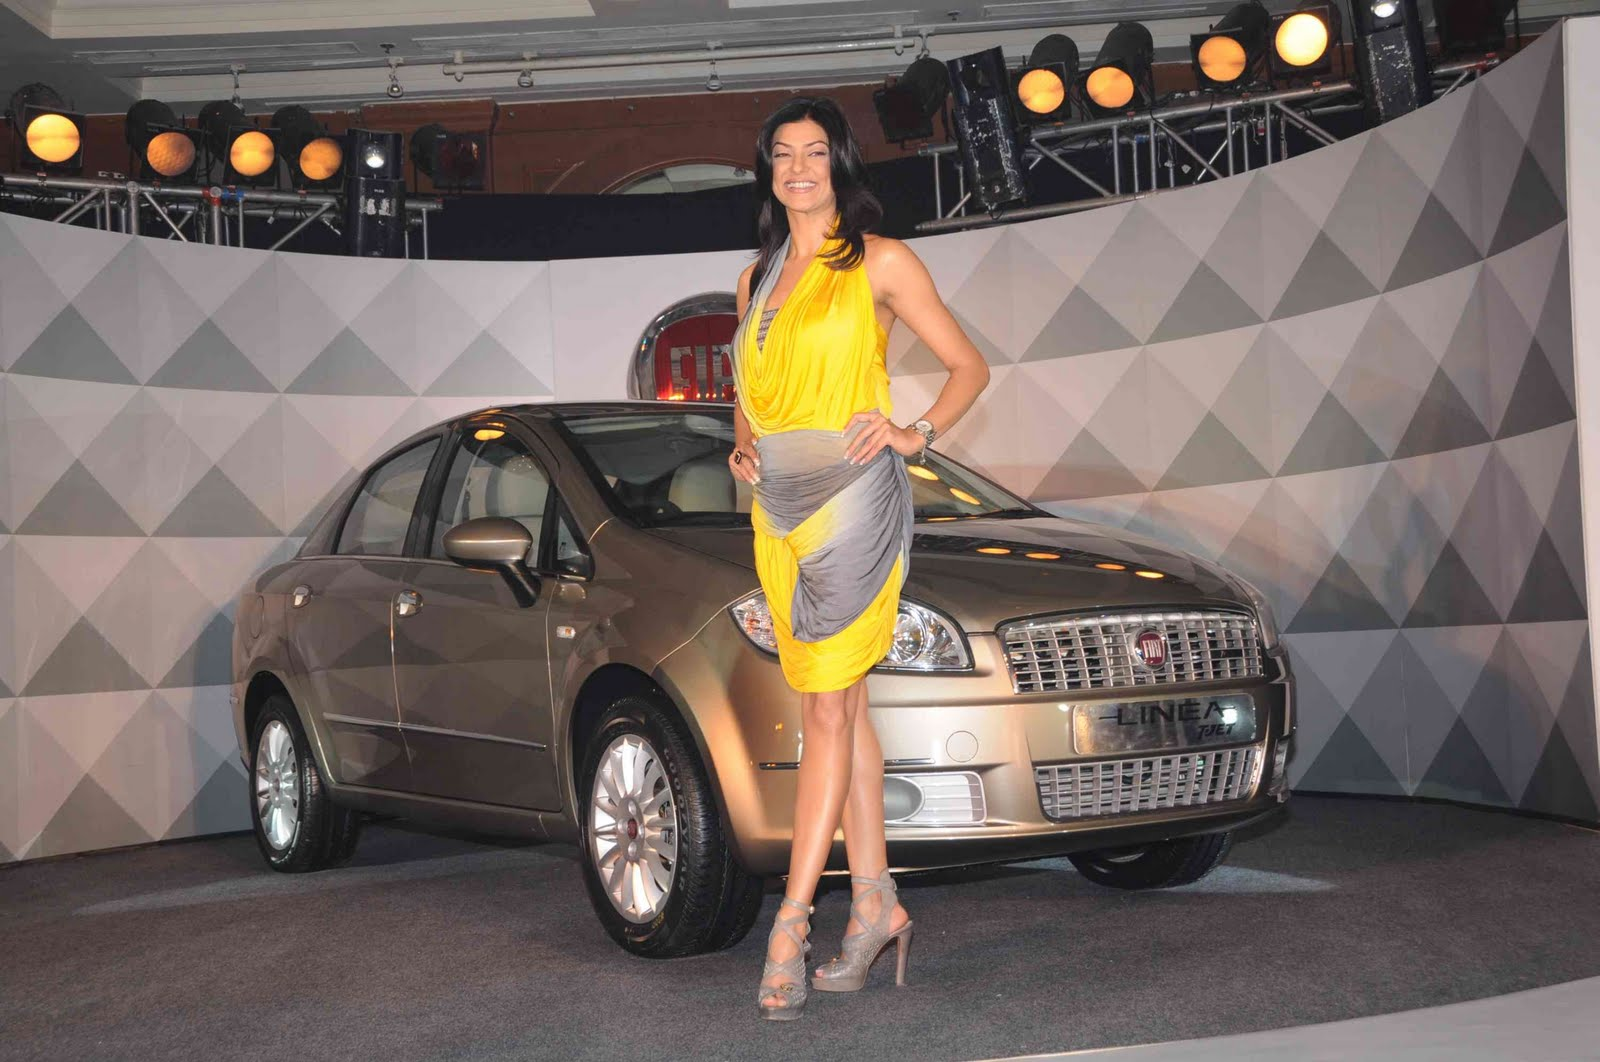 industry manufacturer to made compass australia in exports news units the first automobiles automobile batch jeep fiat from has india of japan chrysler shipped limited its